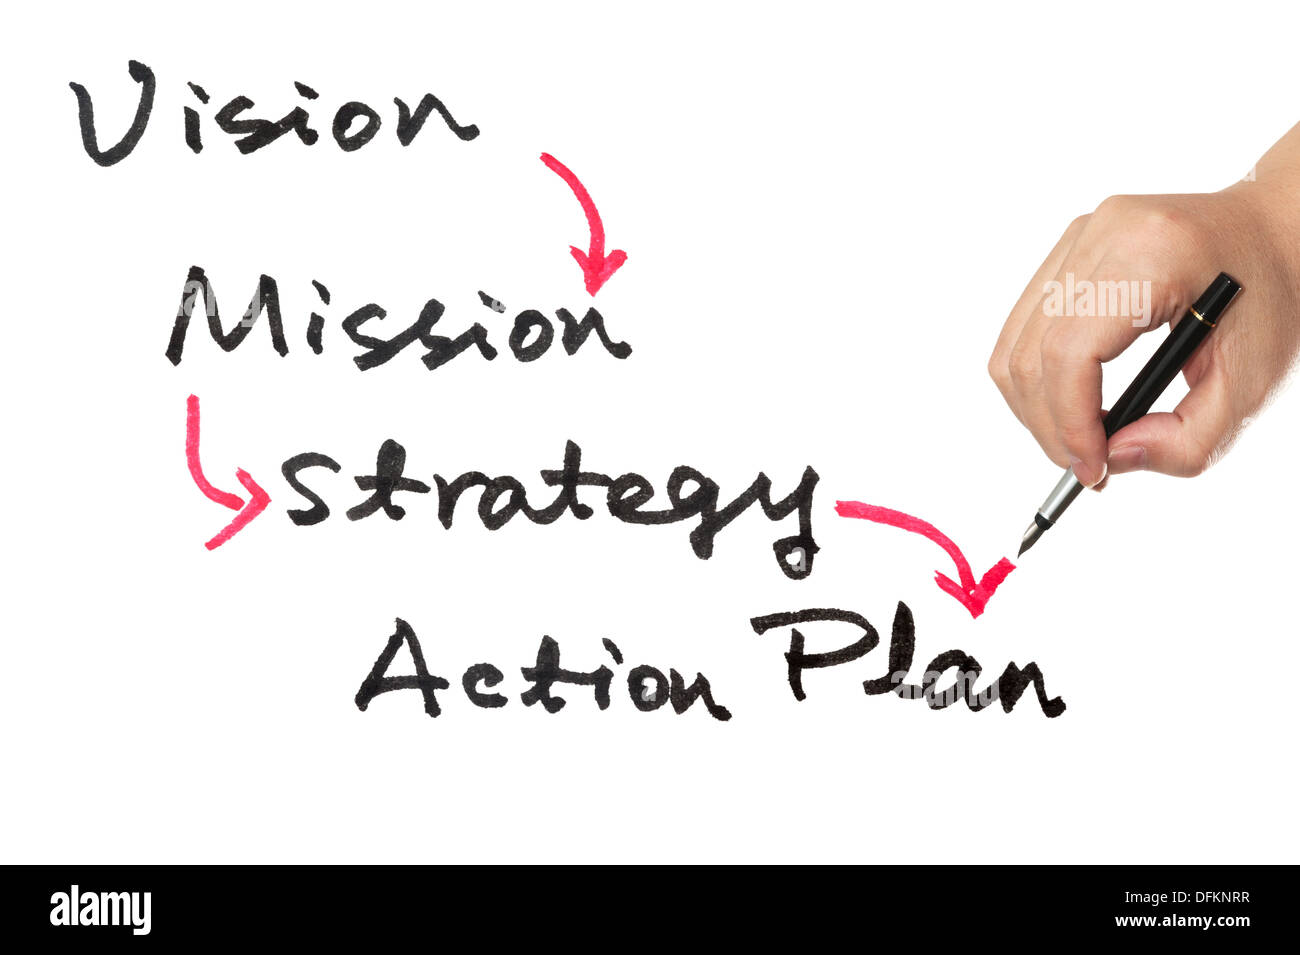 vision and strategy to achieve vision Strategic planning: clarifying the mission, vision and values this is the first step in starting a strategic plan for your business whether your organization is 100 years old or just beginning, this is the first step in strategic plan development.